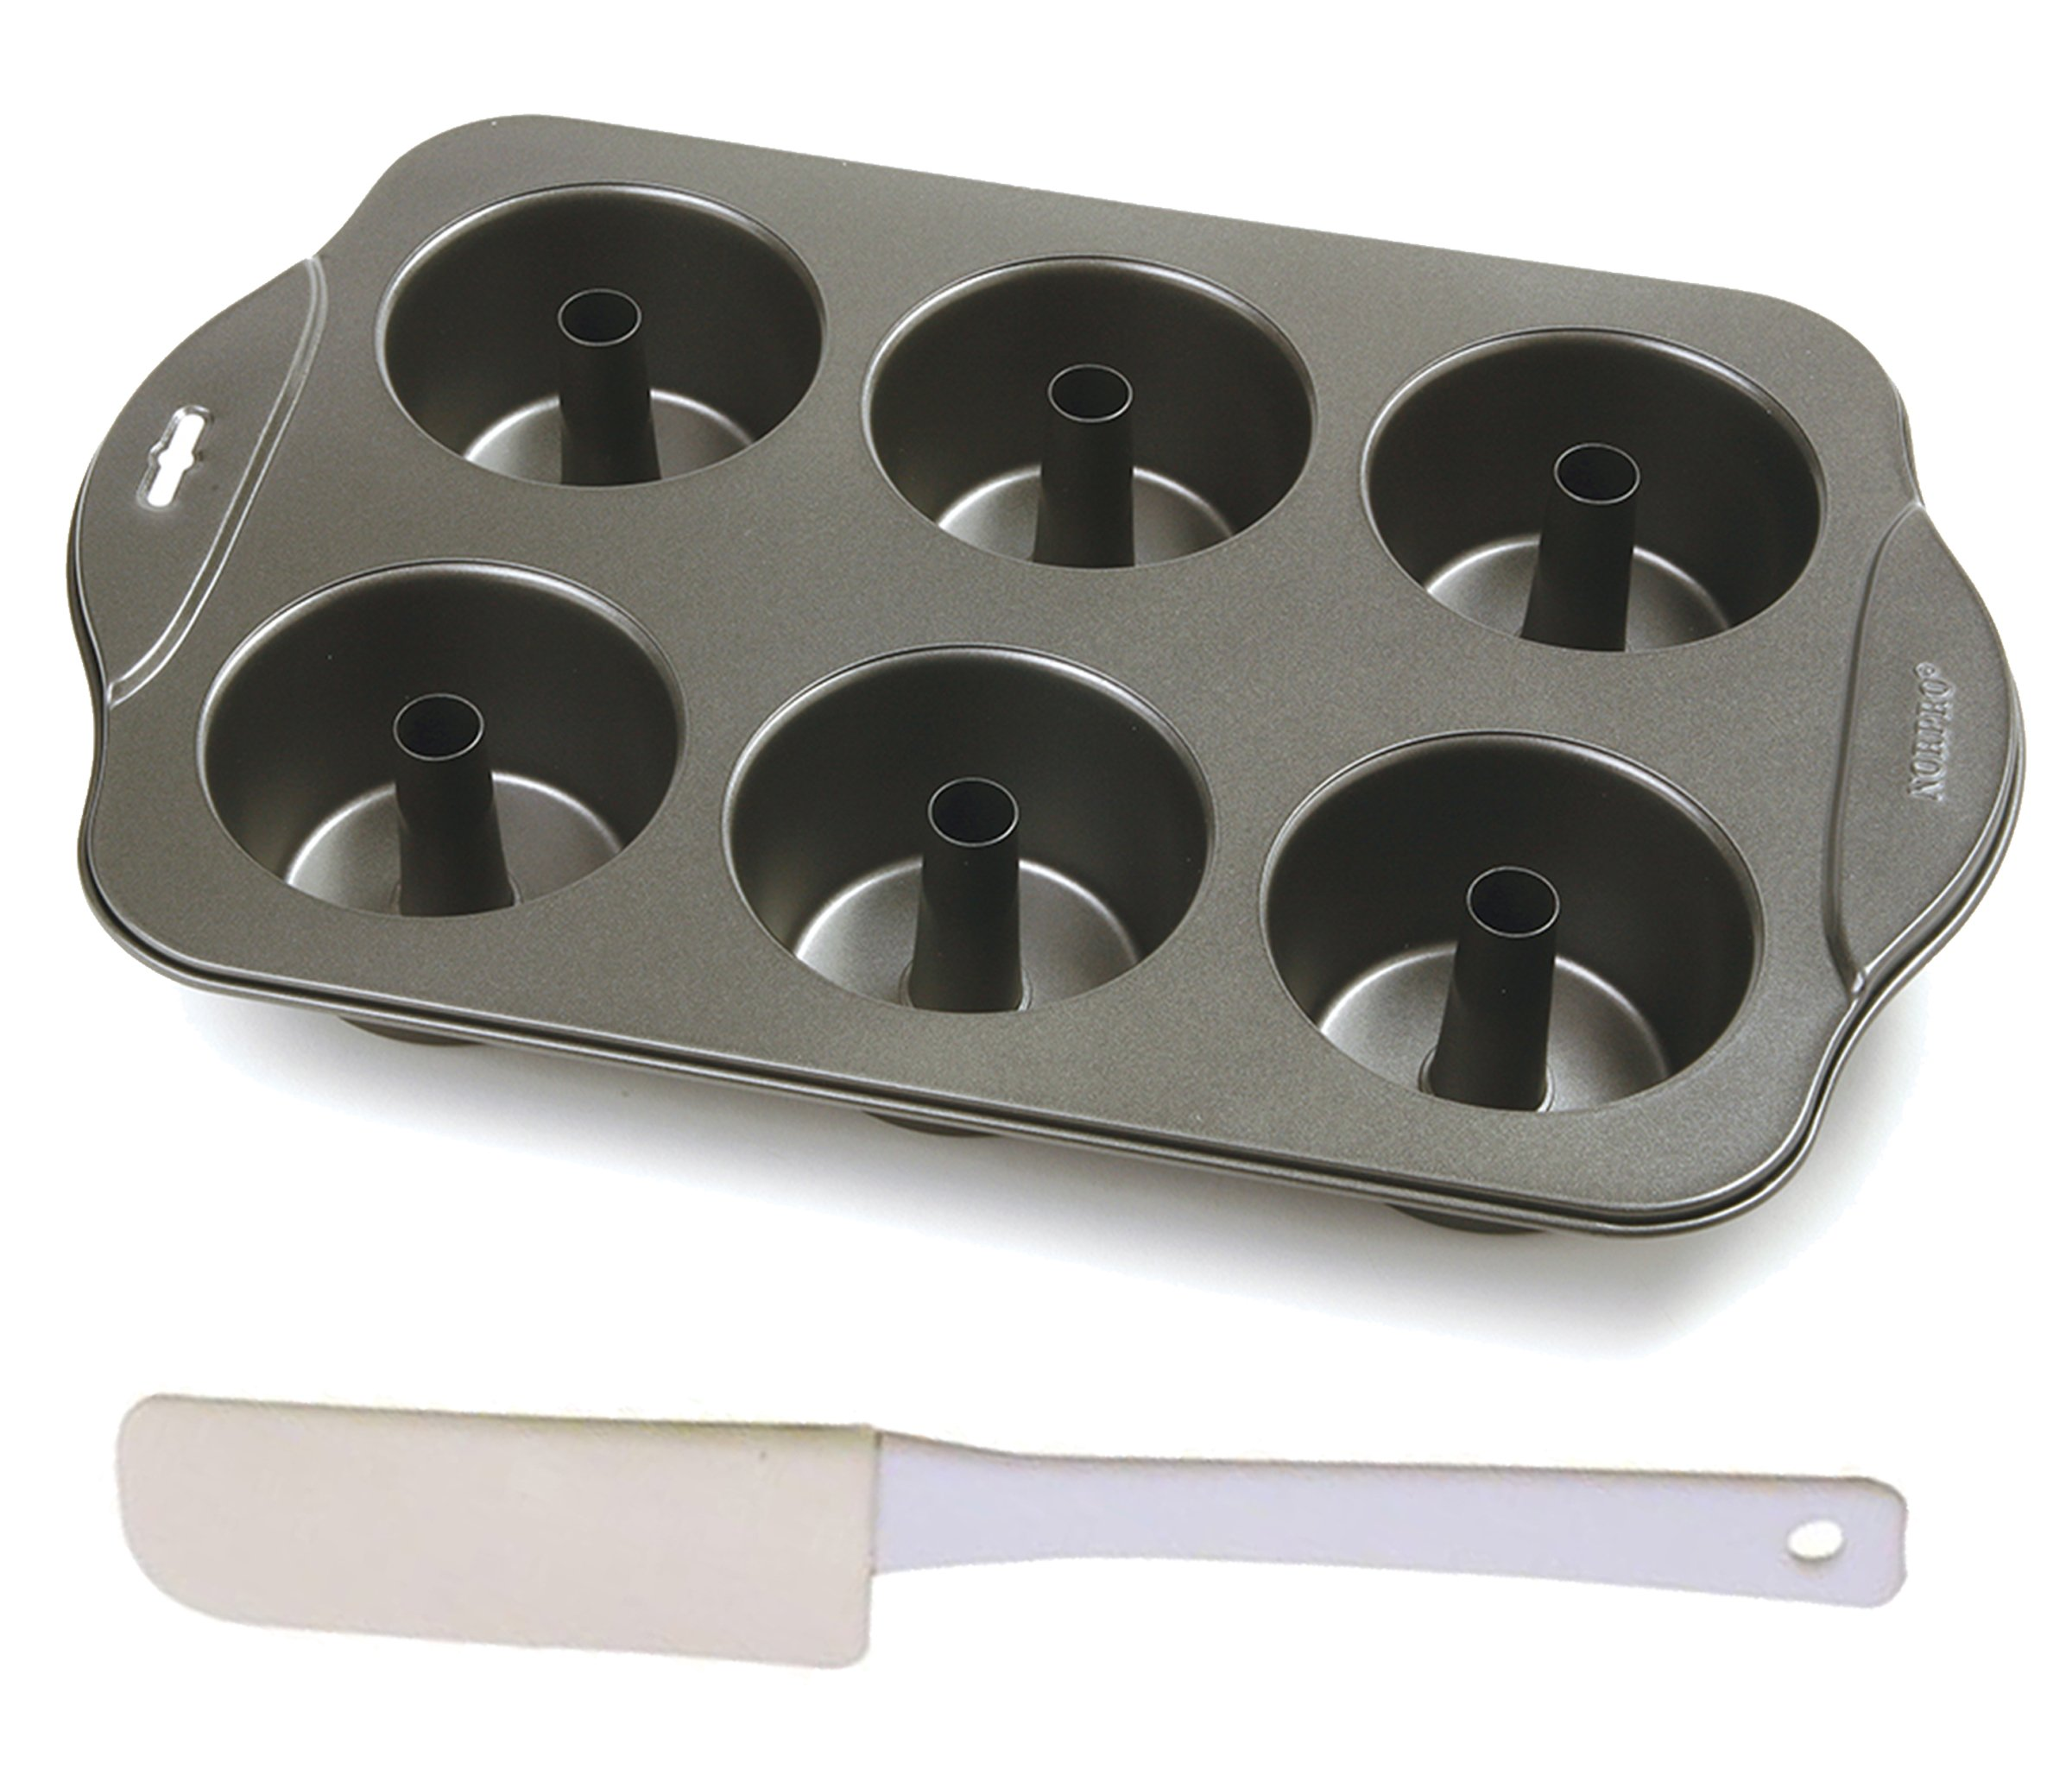 Mozlly Value Pack - Norpro Nonstick 6 Cup Mini Angel Food Bundt Cake Pan - 17 x 11 x 2.25 inch AND White Mini Rubber Spatula - 6 inch (2 Items)